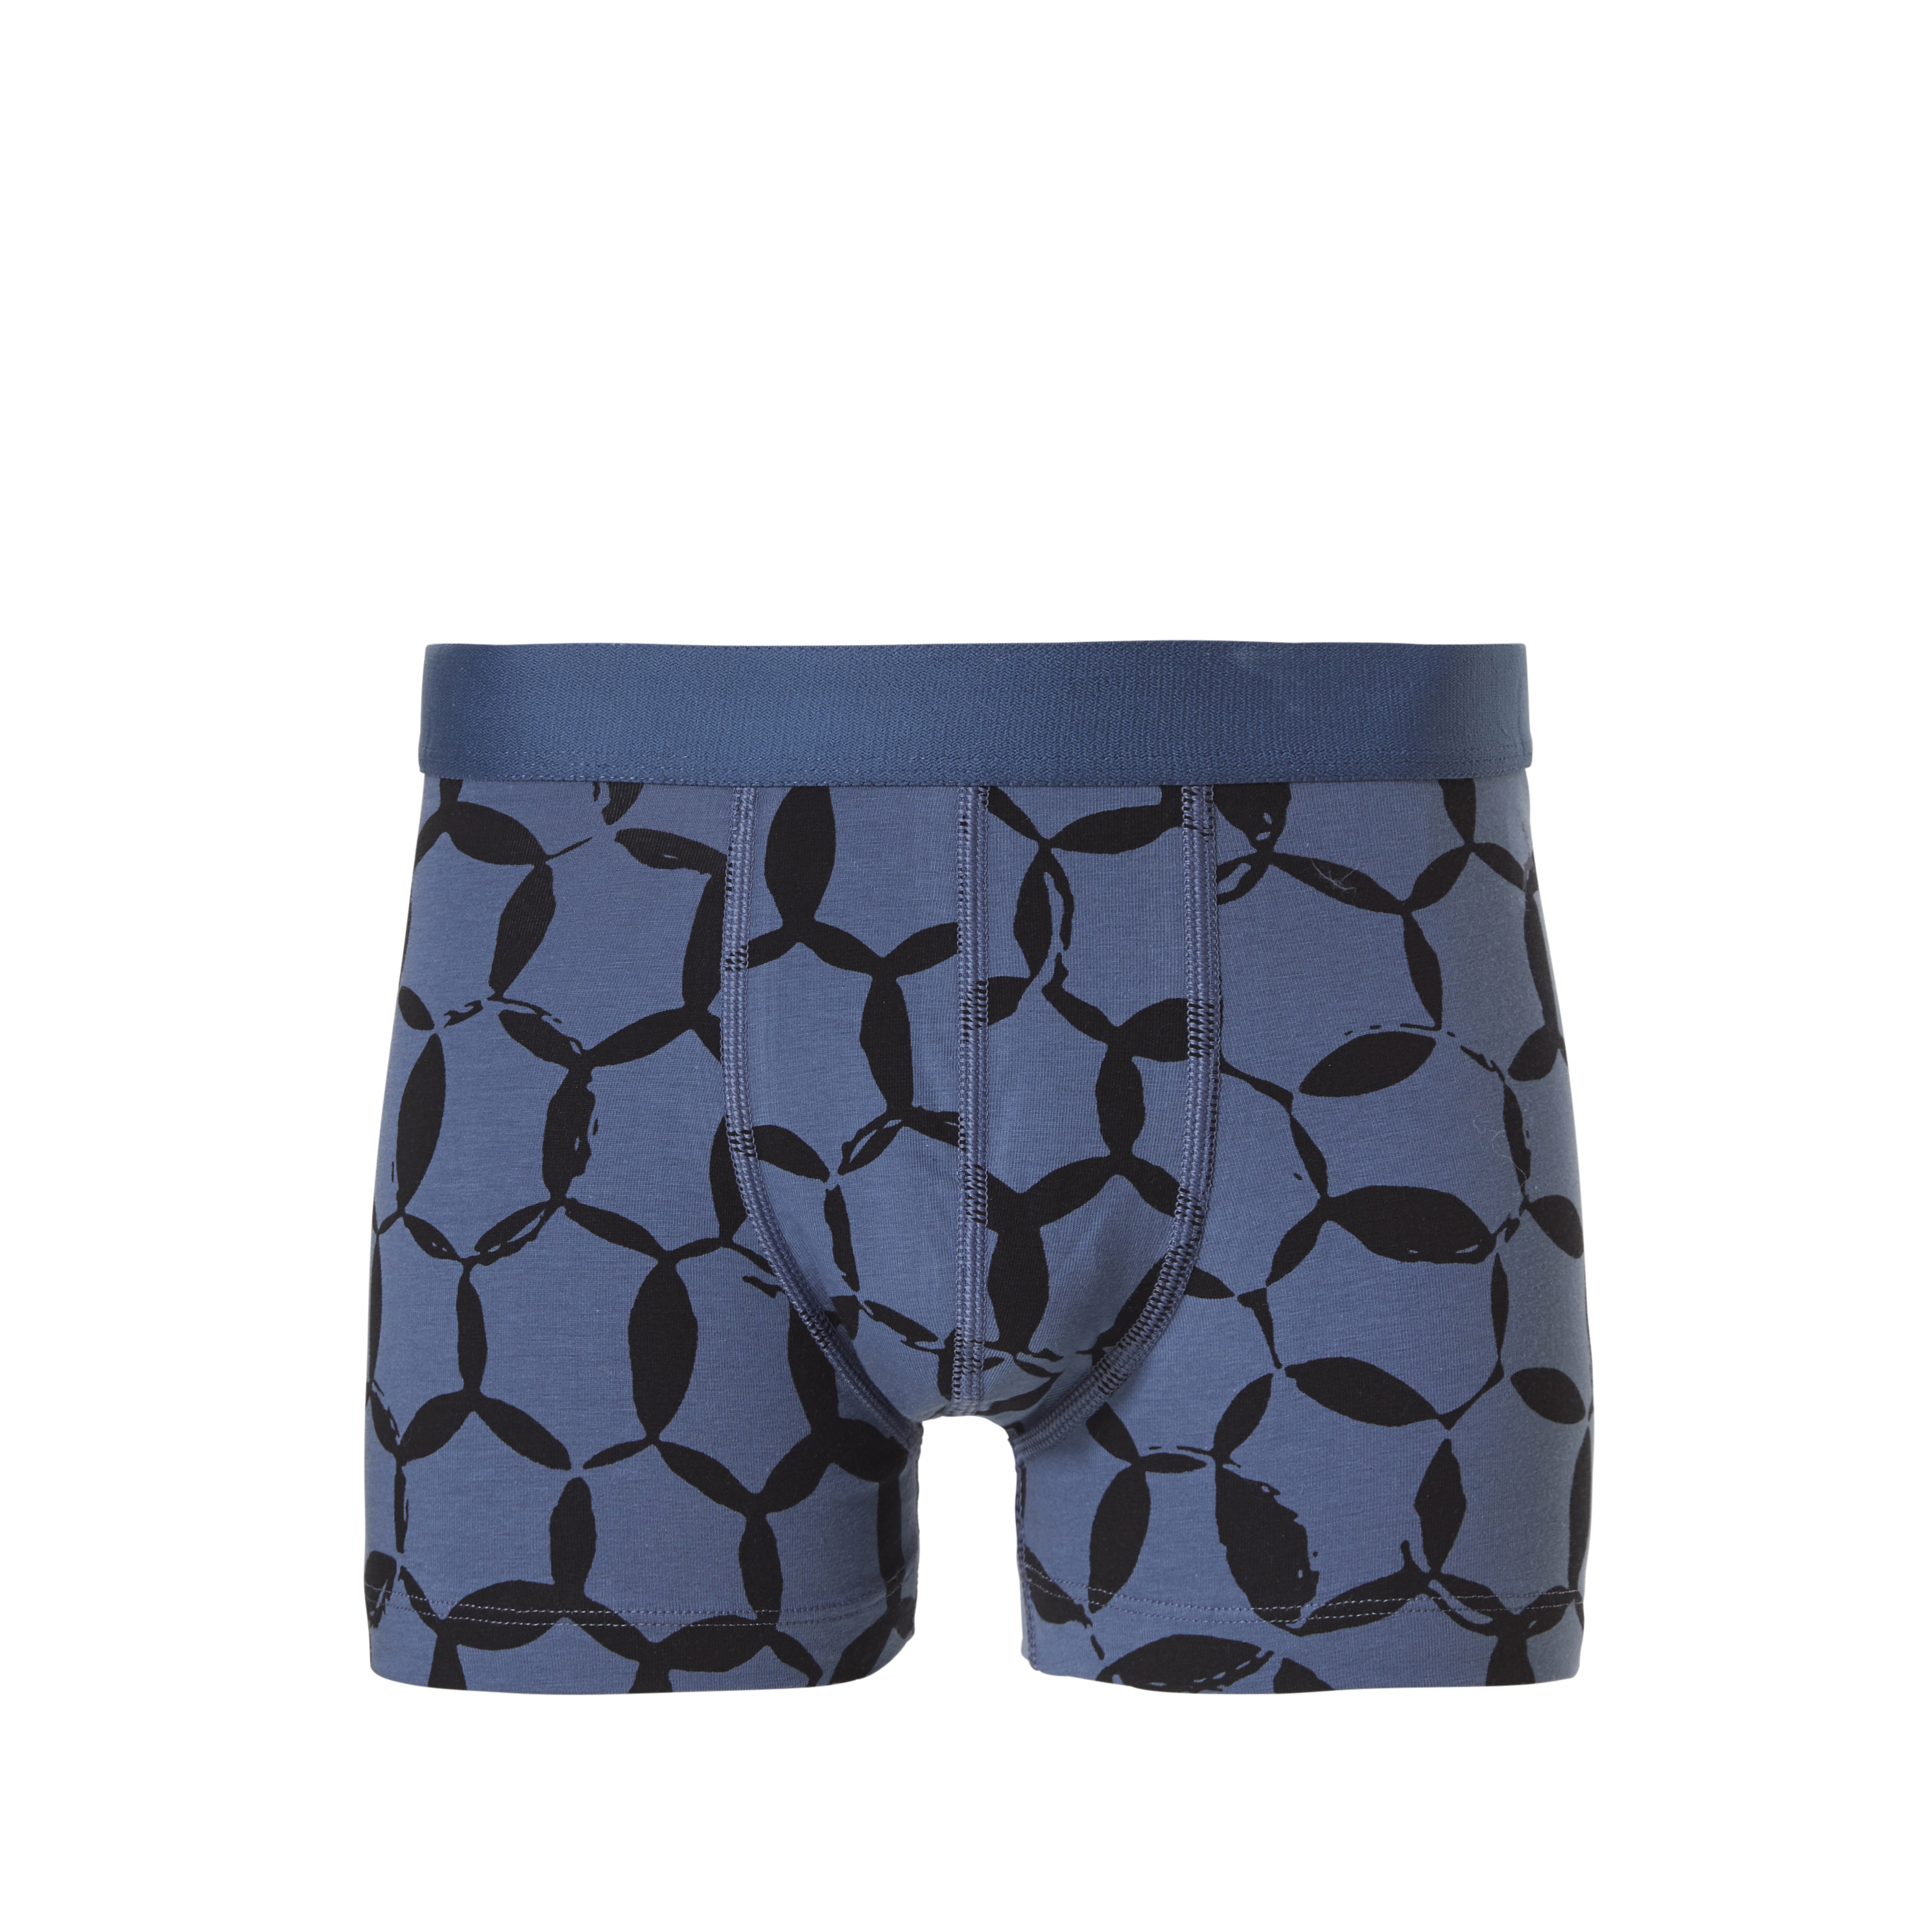 Ten Cate Boys Shorts 13-18Y Earth Stamps